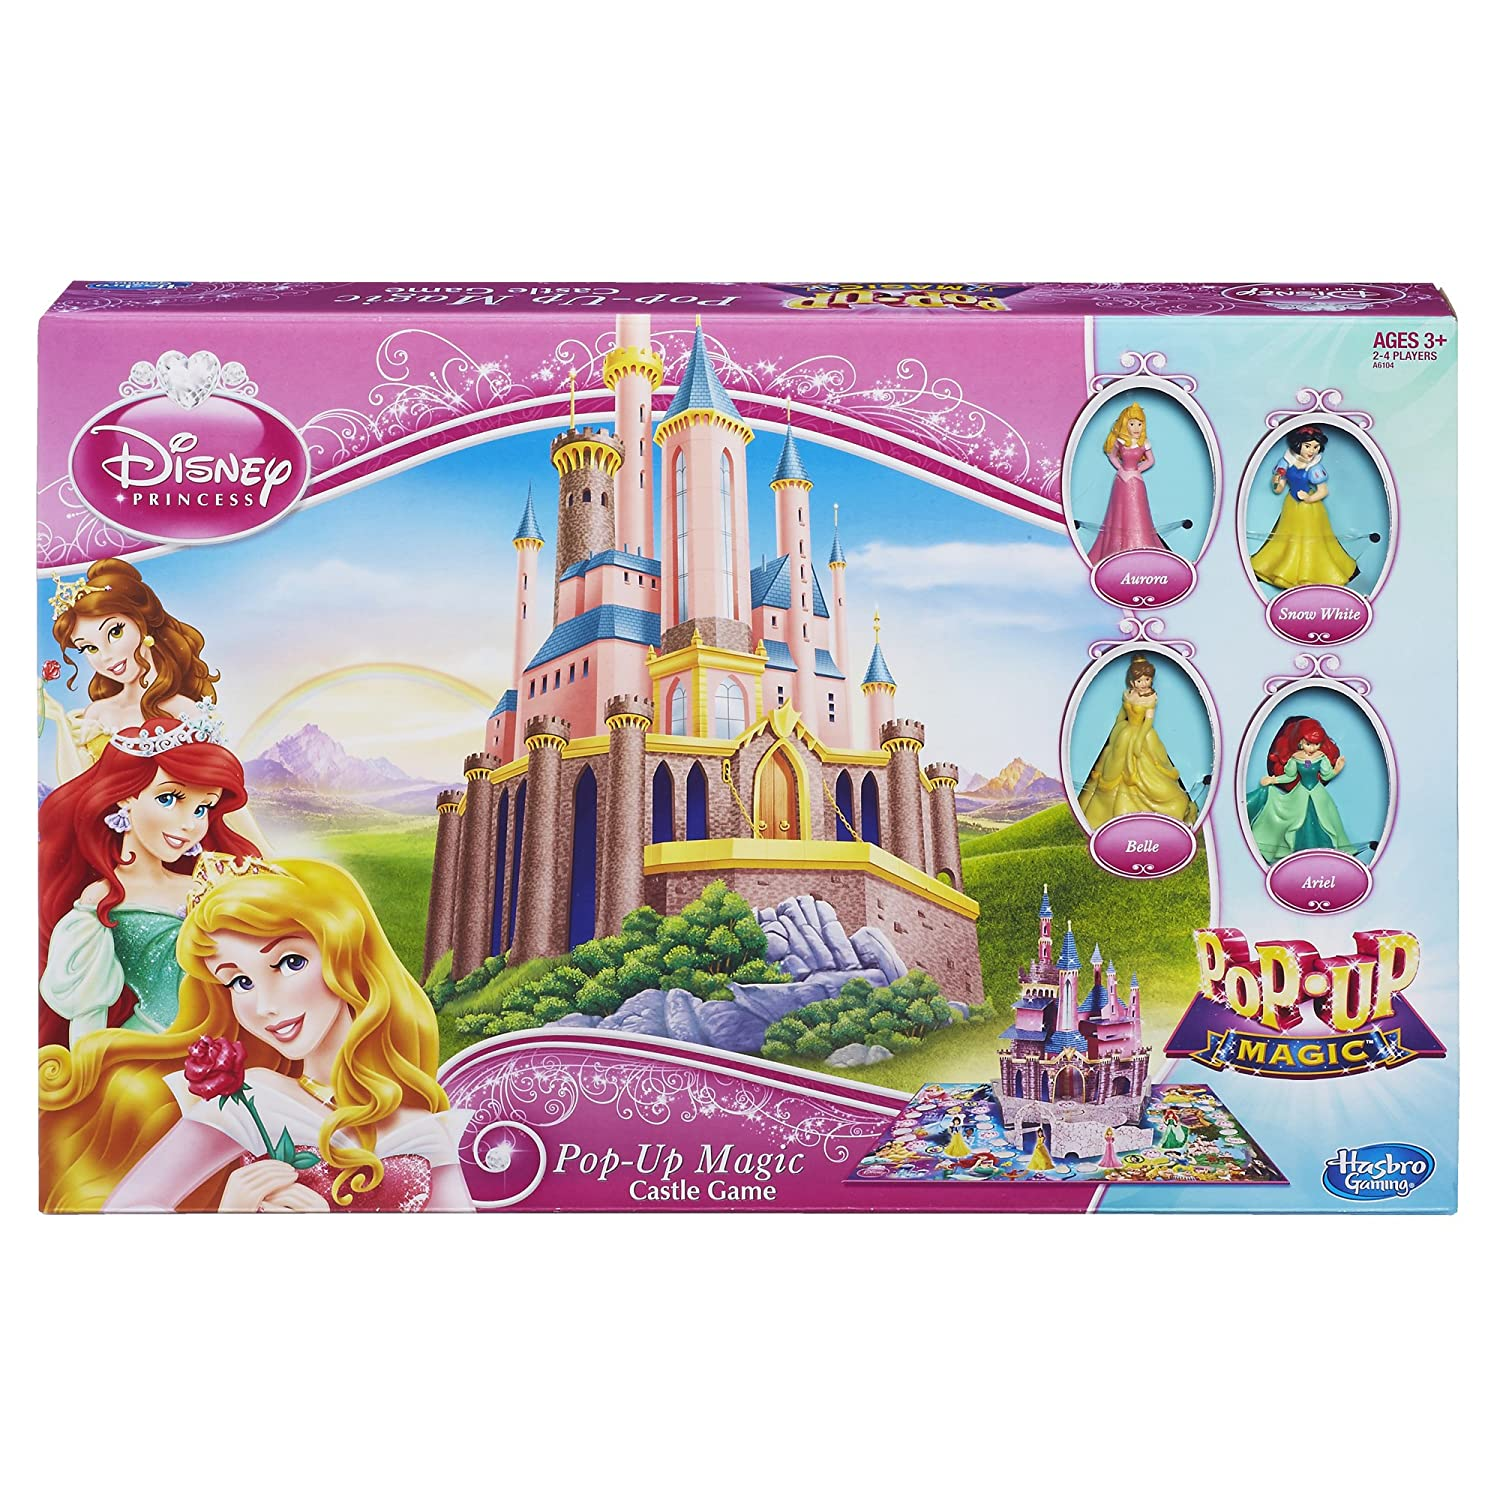 Disney Princess Pop-Up Magic Pop-Up Magic Castle Game